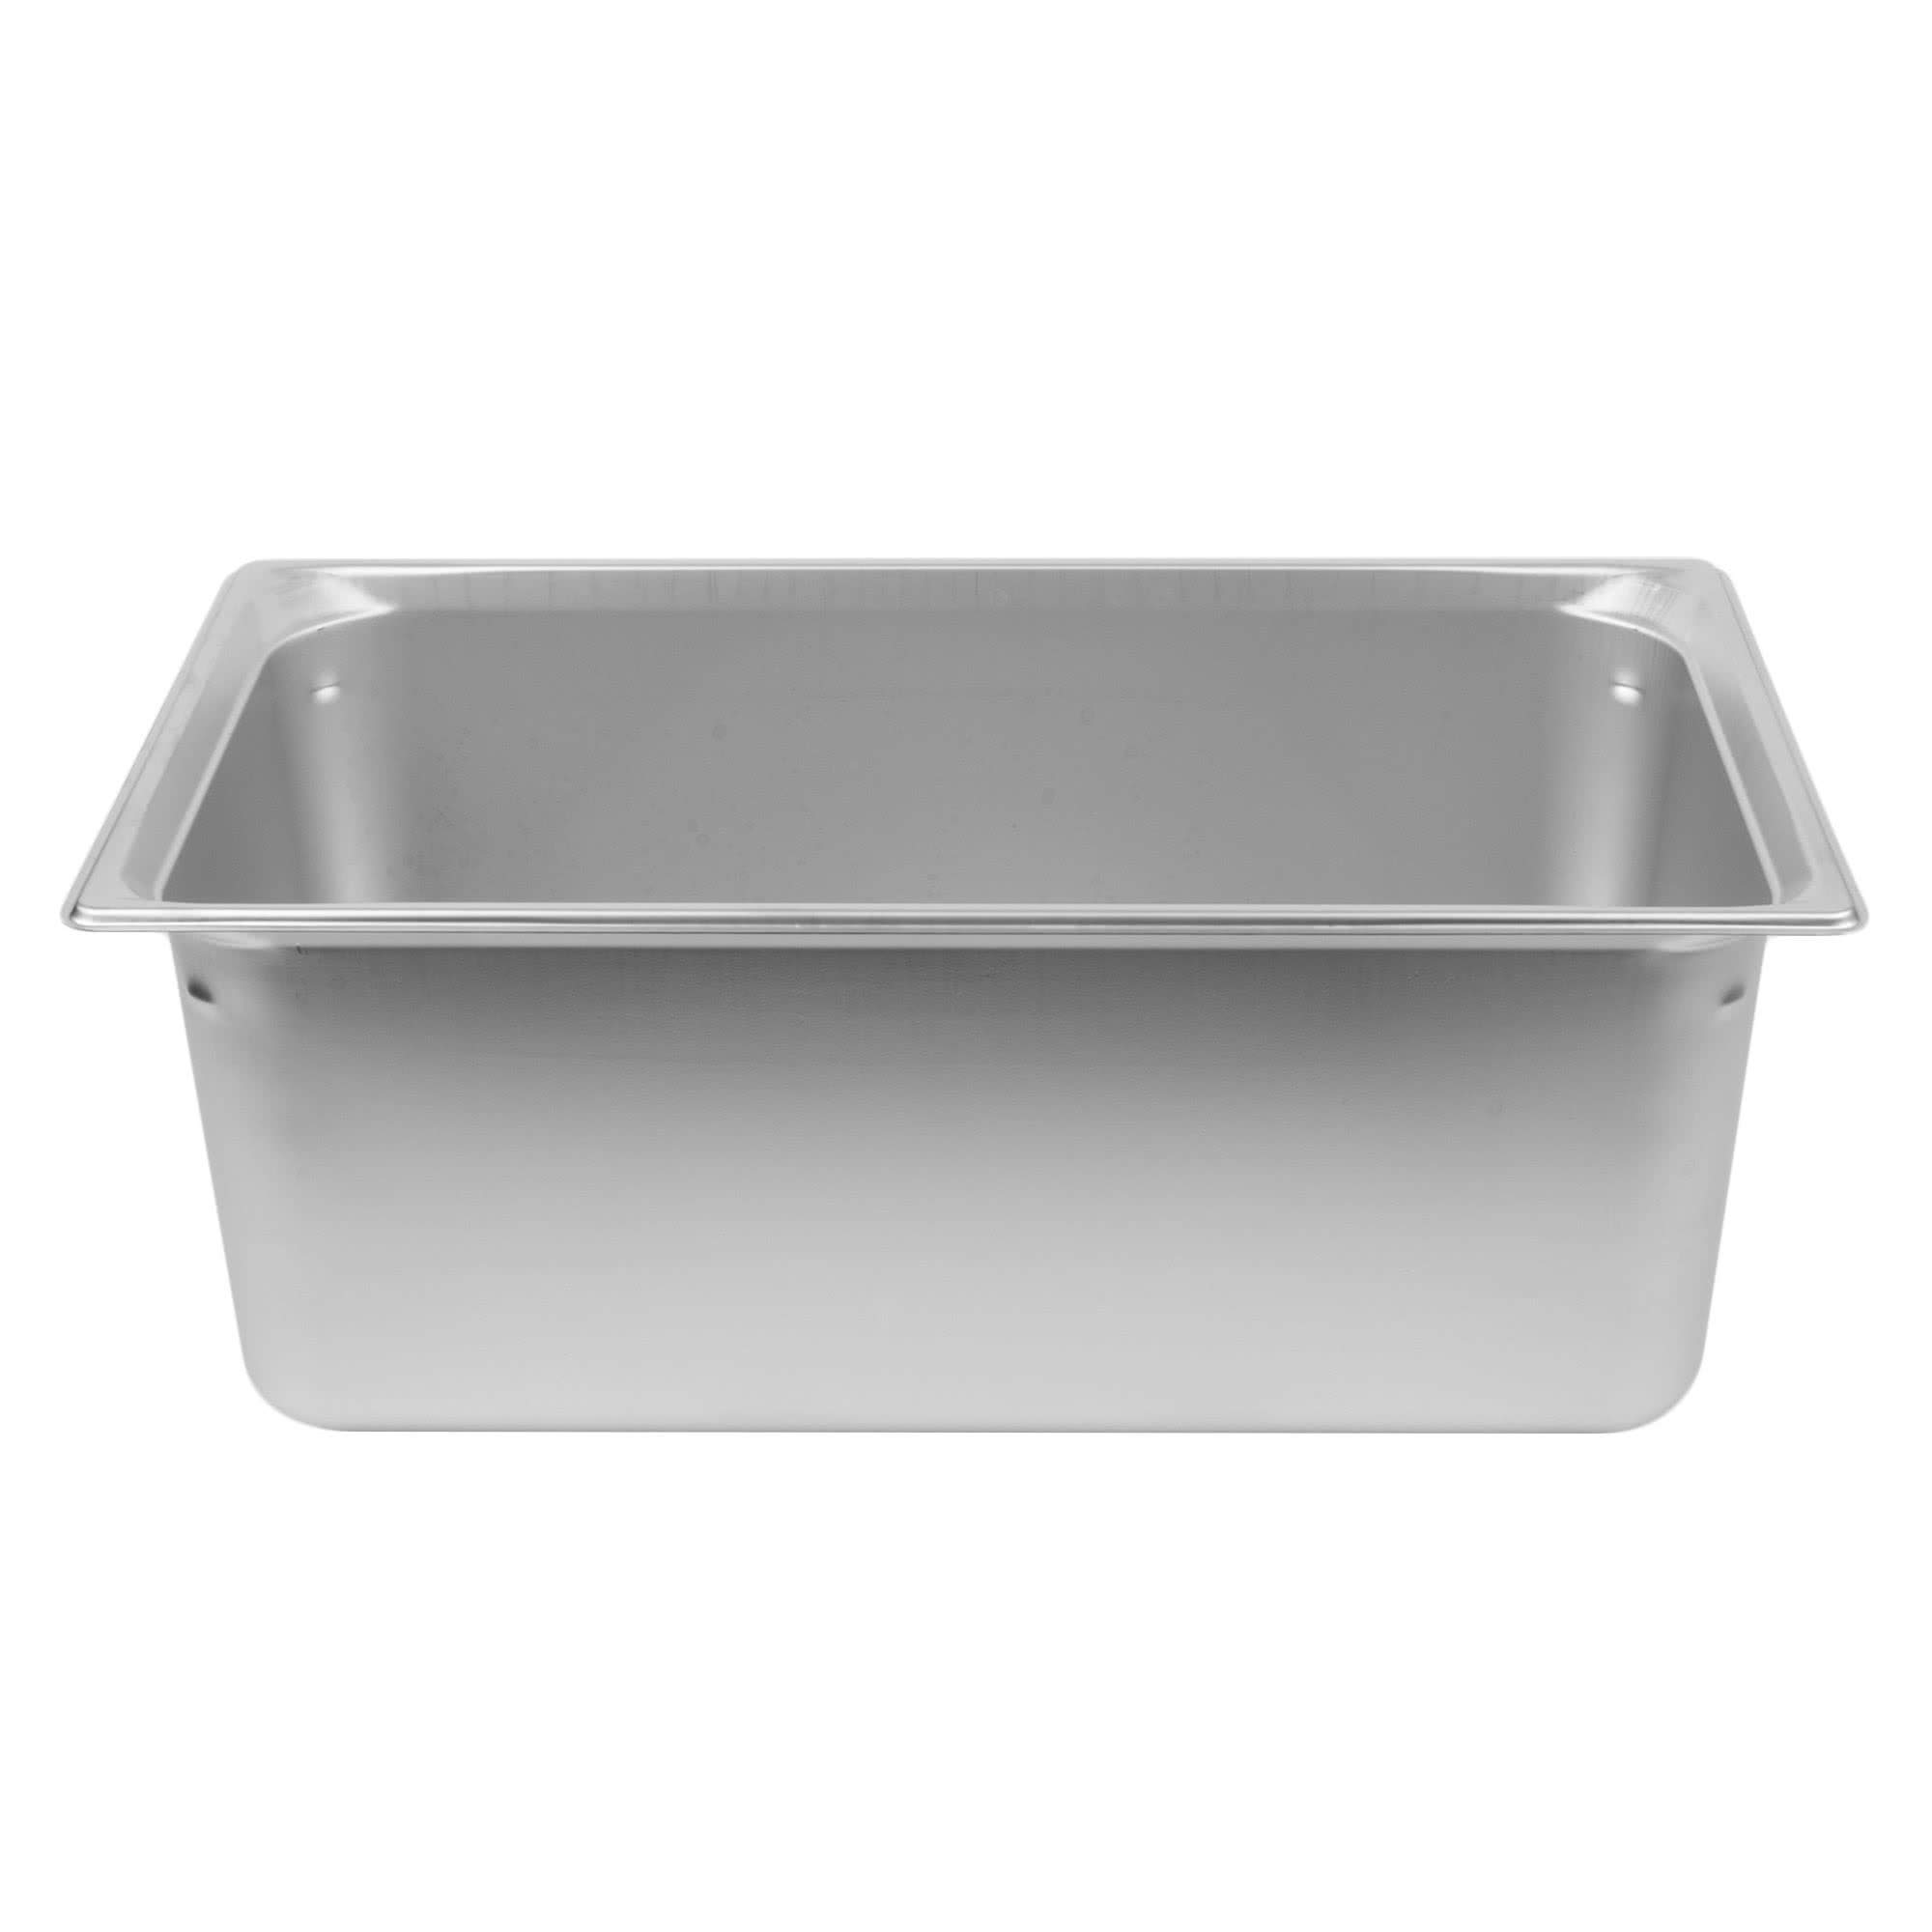 TableTop King 90082 Super Pan 3 Full Size Anti-Jam Stainless Steel Steam Table/Hotel Pan - 8'' Deep by TableTop King